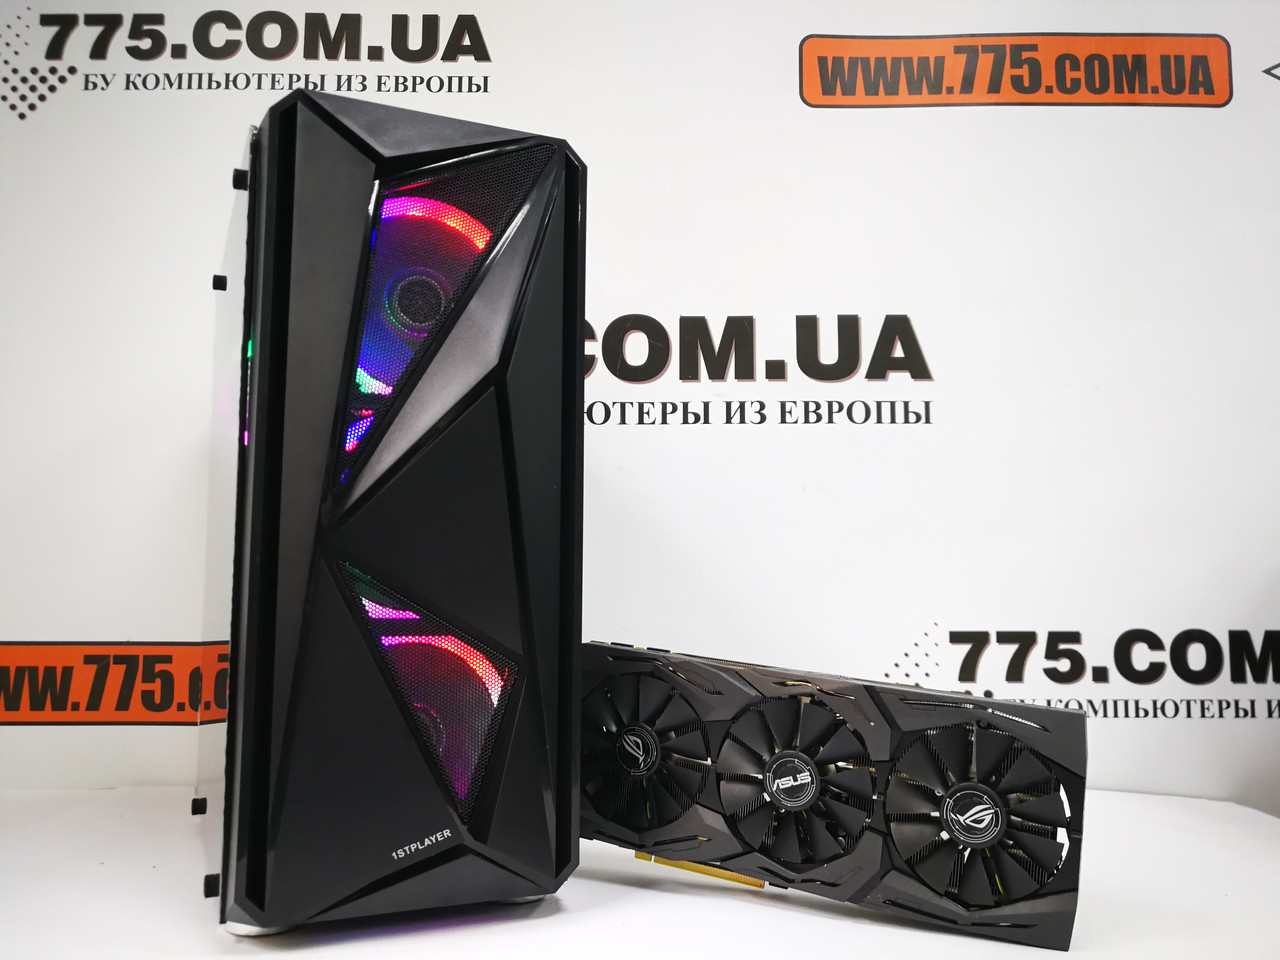 Игровой компьютер Intel Core i3-9100f 4.2GHz, RAM 16ГБ, SSD 480ГБ, GTX 1080 8ГБ